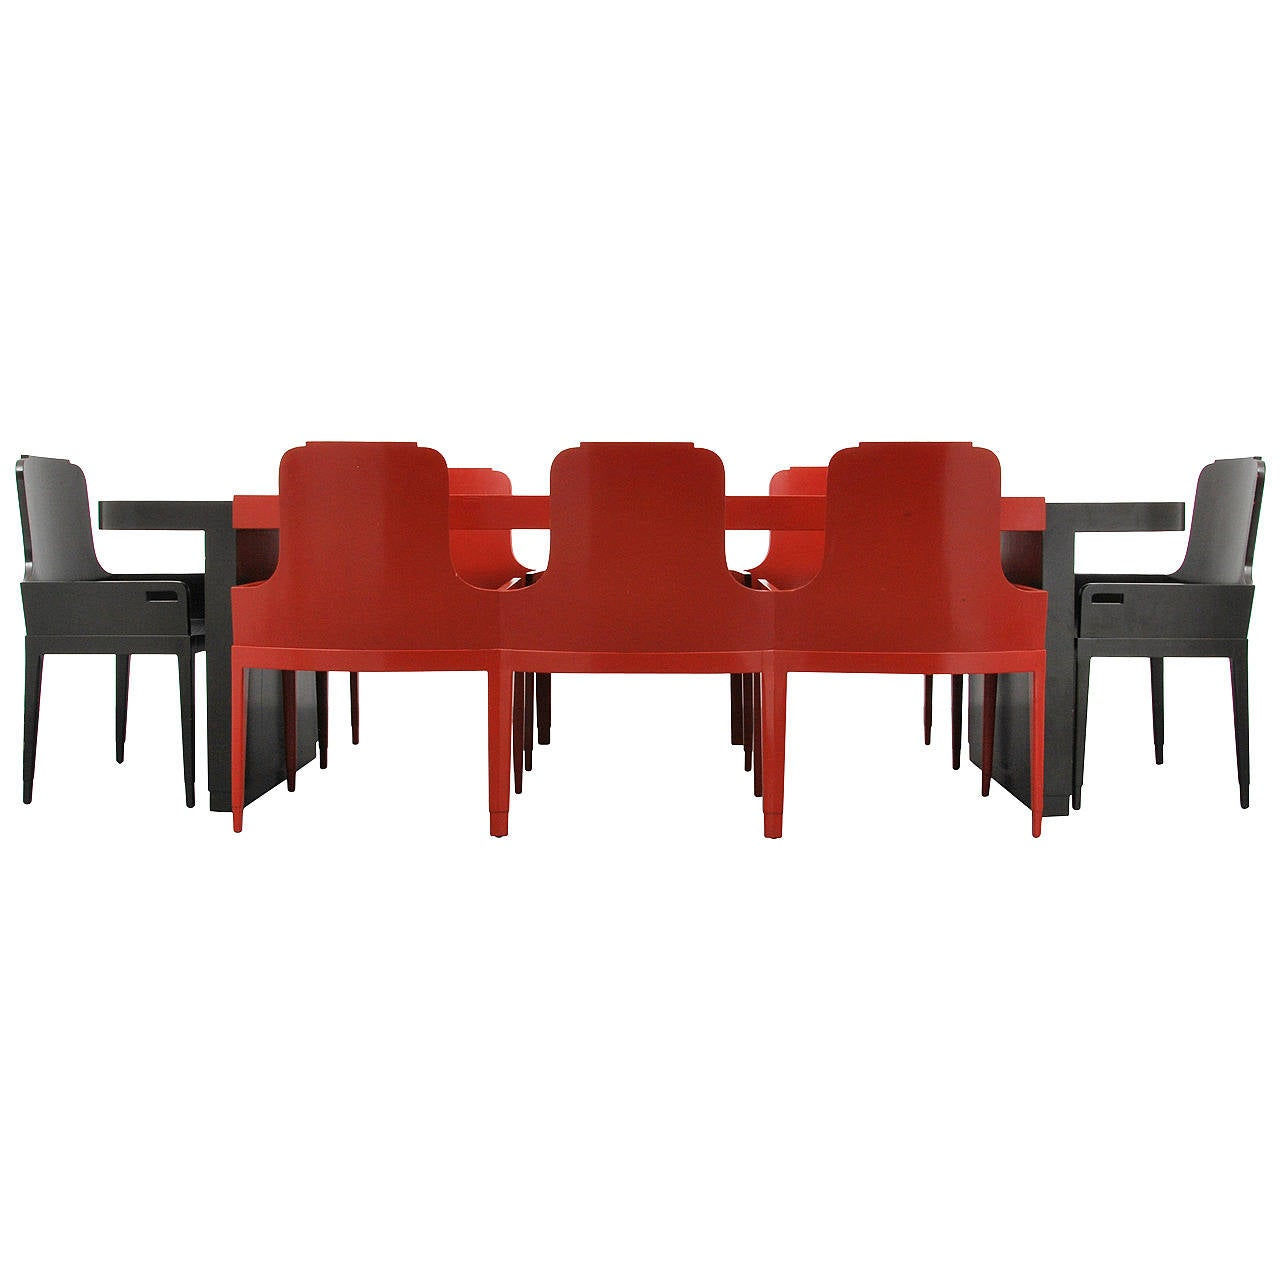 Jules Bouy Art Deco Dining Suite 1